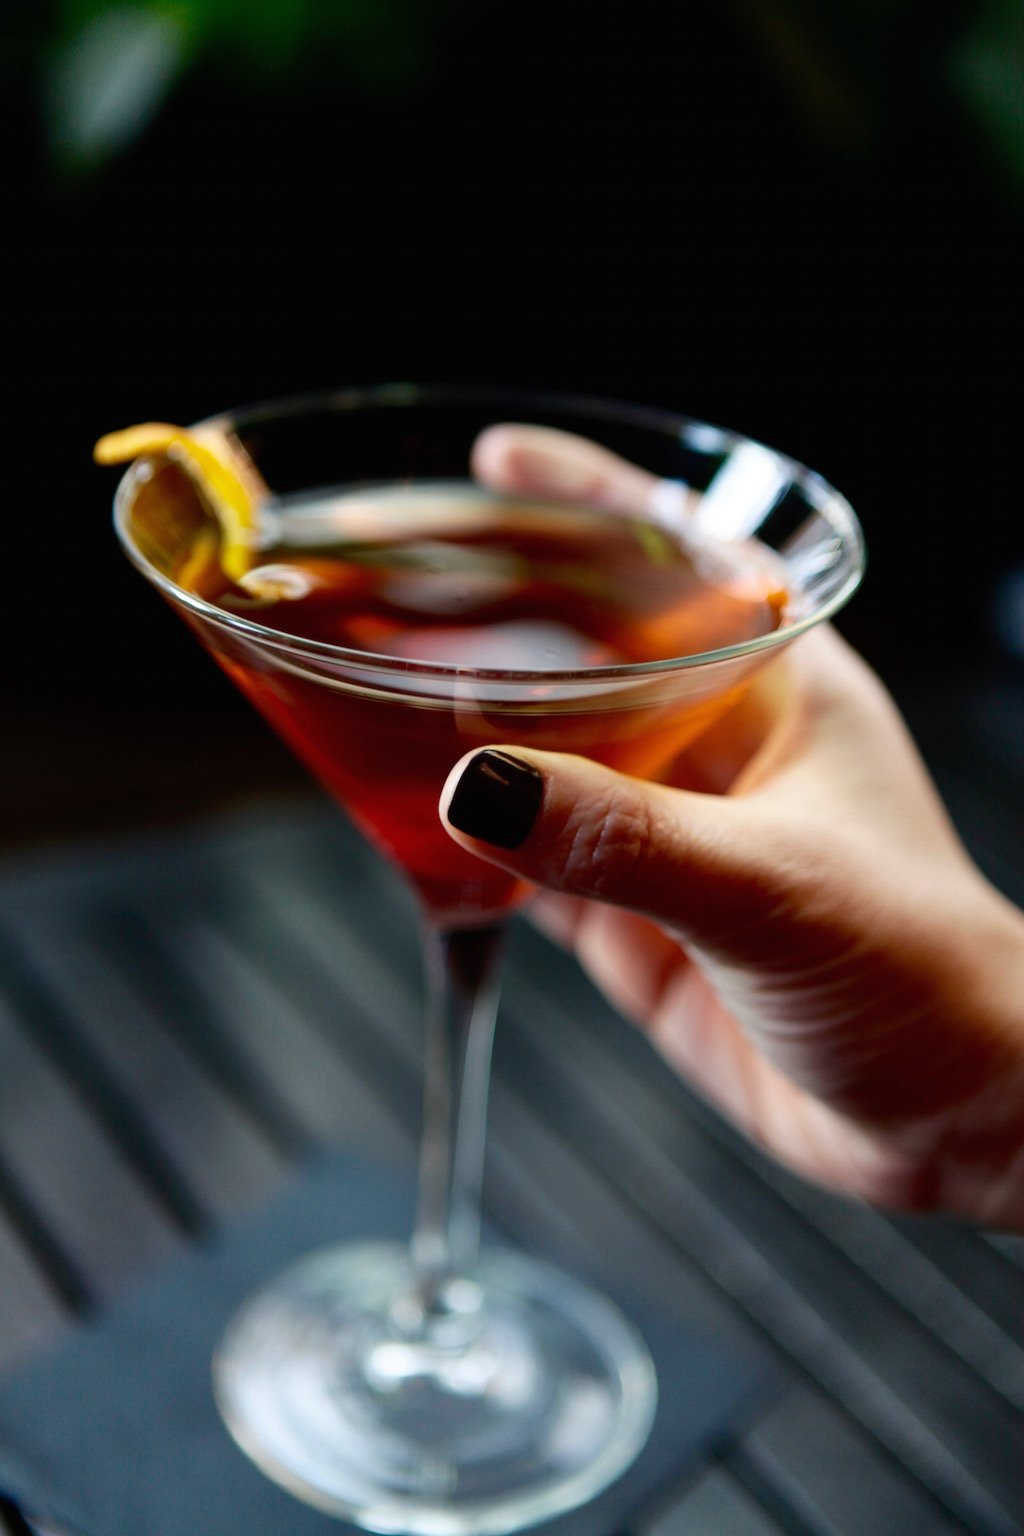 Drinks are designed to be comparatively cheap, like this Mekhong whiskey Manhattan for $10.